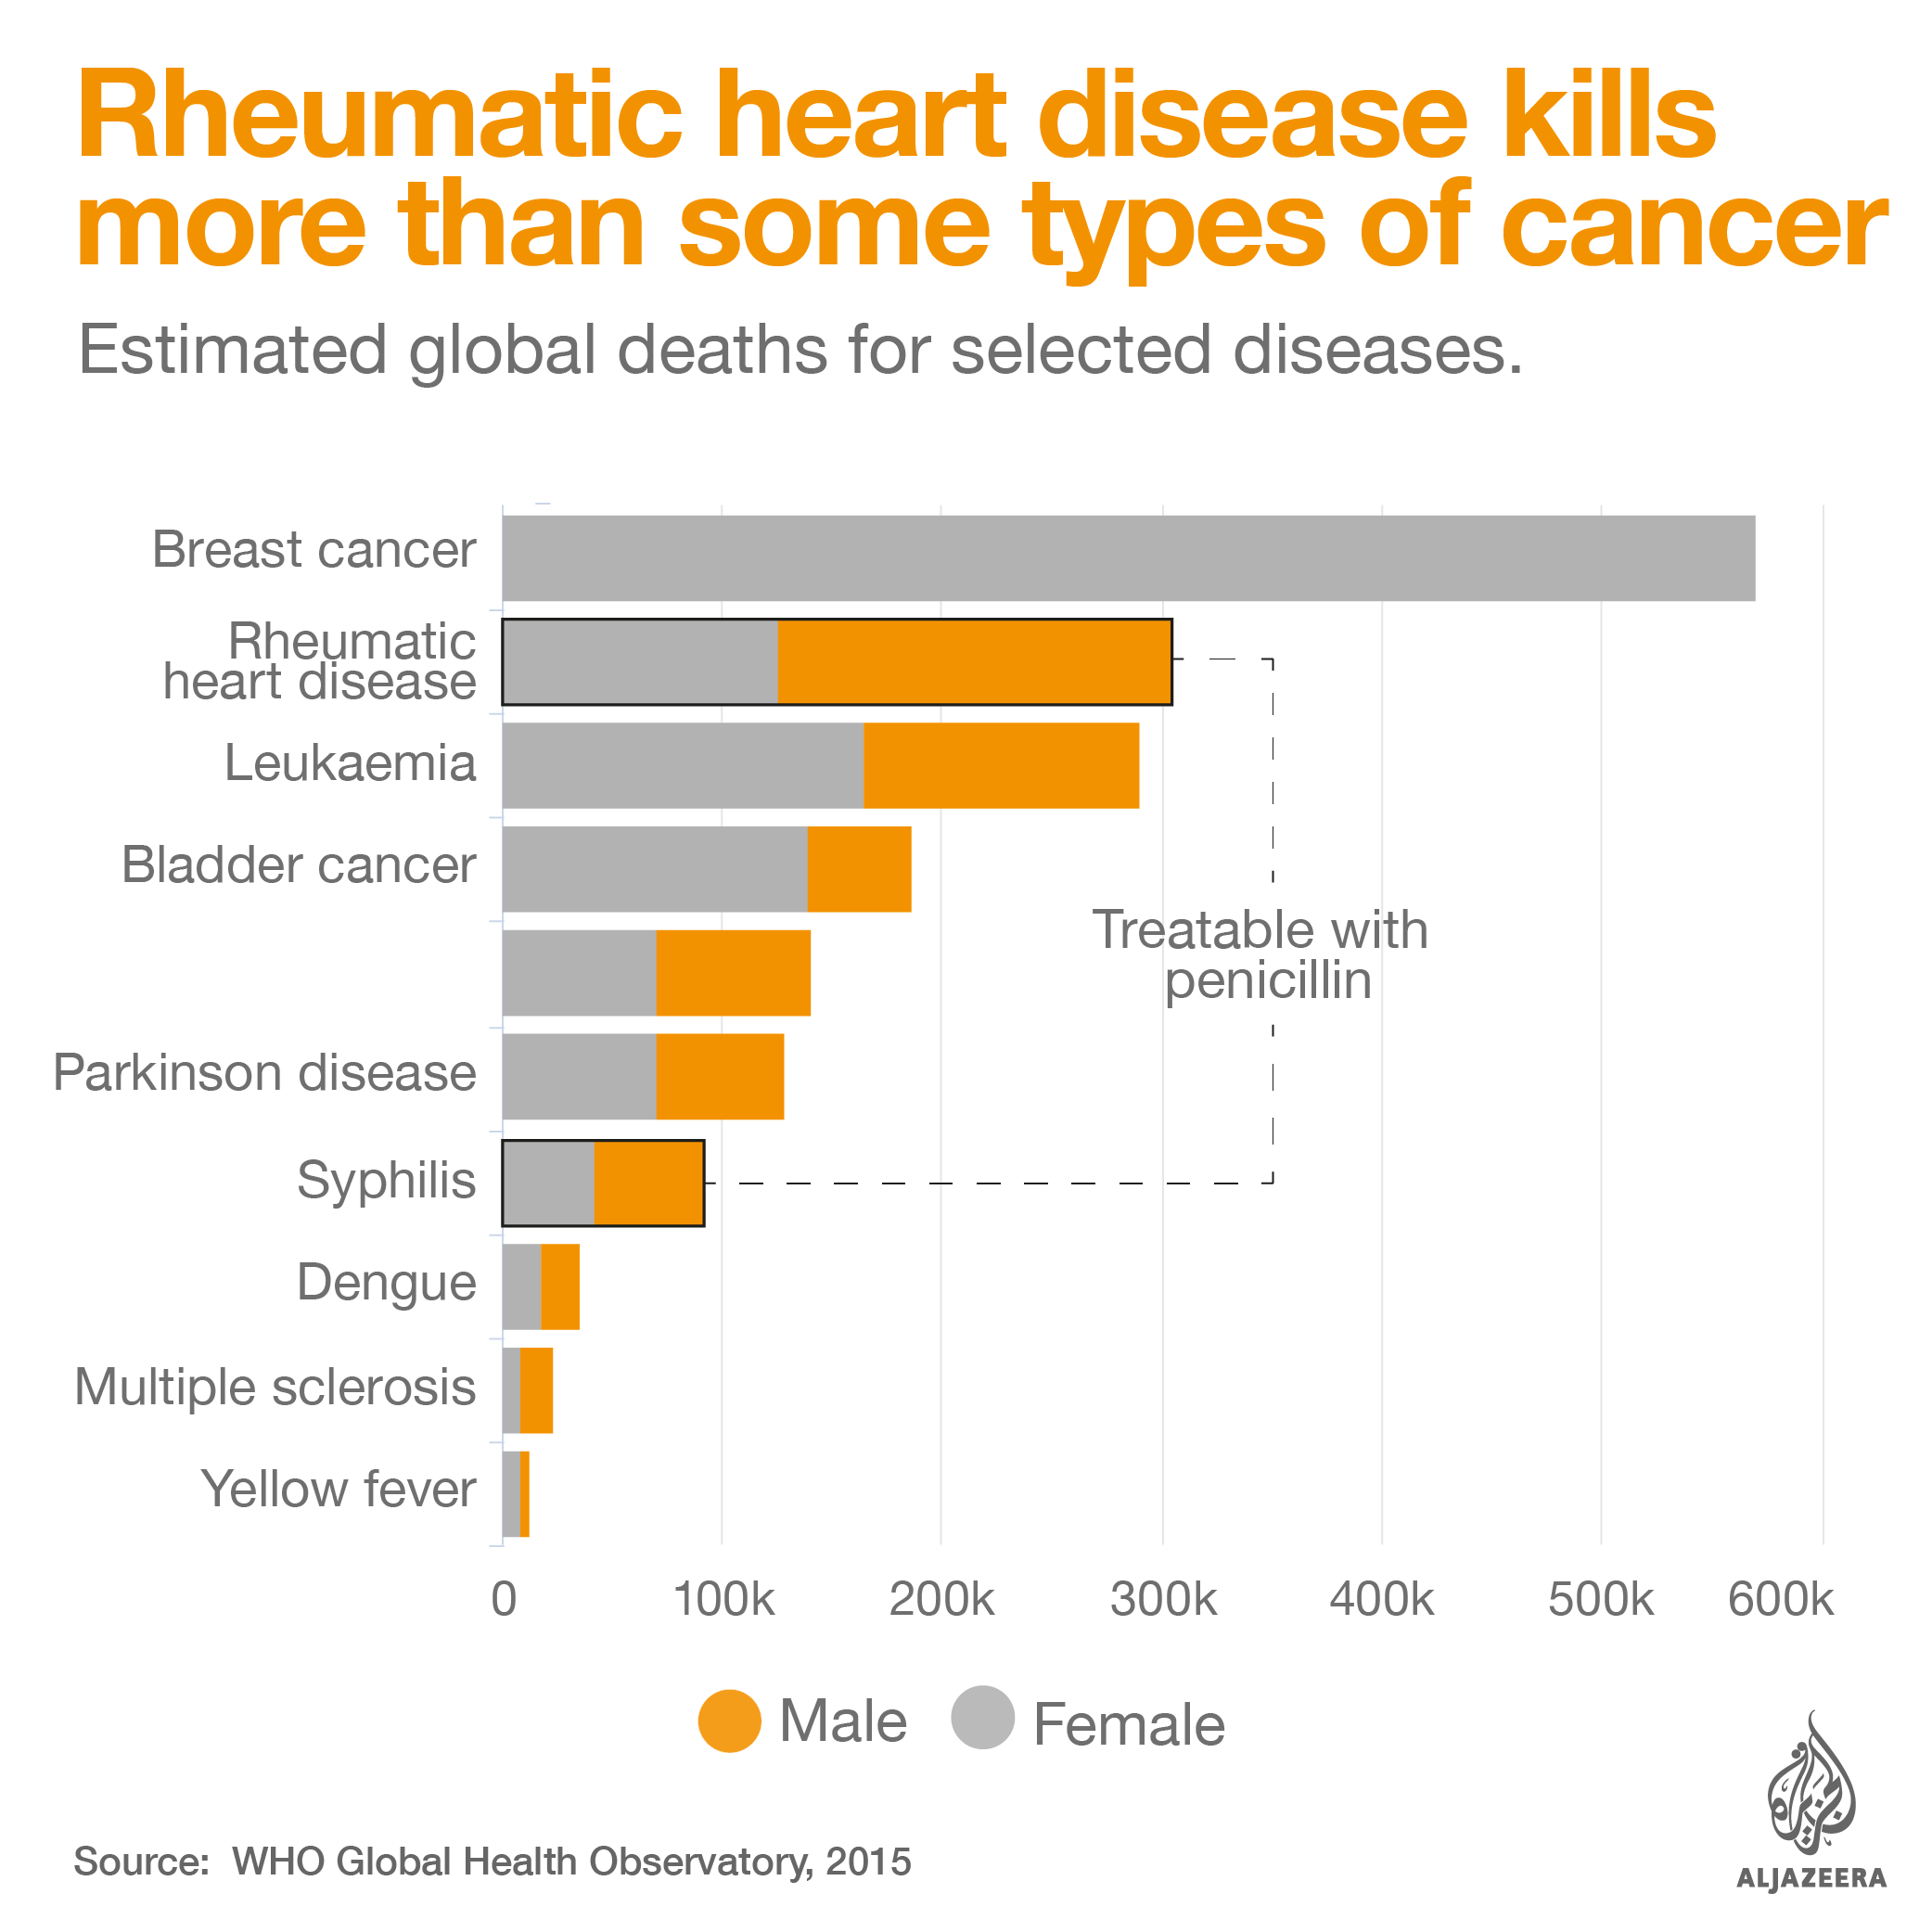 global deaths for selected diseases